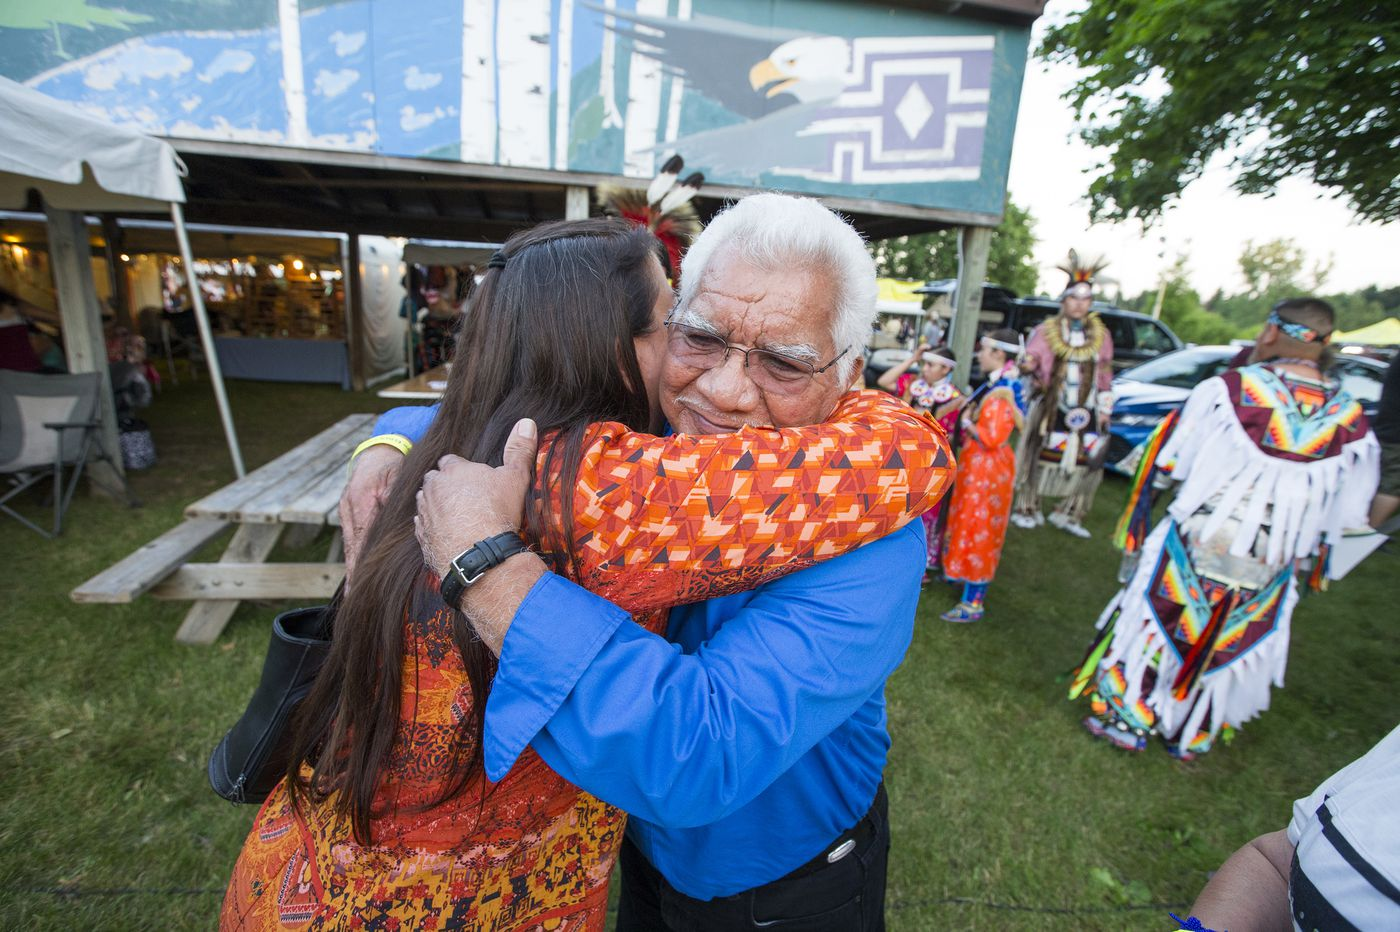 The bodies of three young Native American girls are returned to the Oneida Reservation. And a community heals.